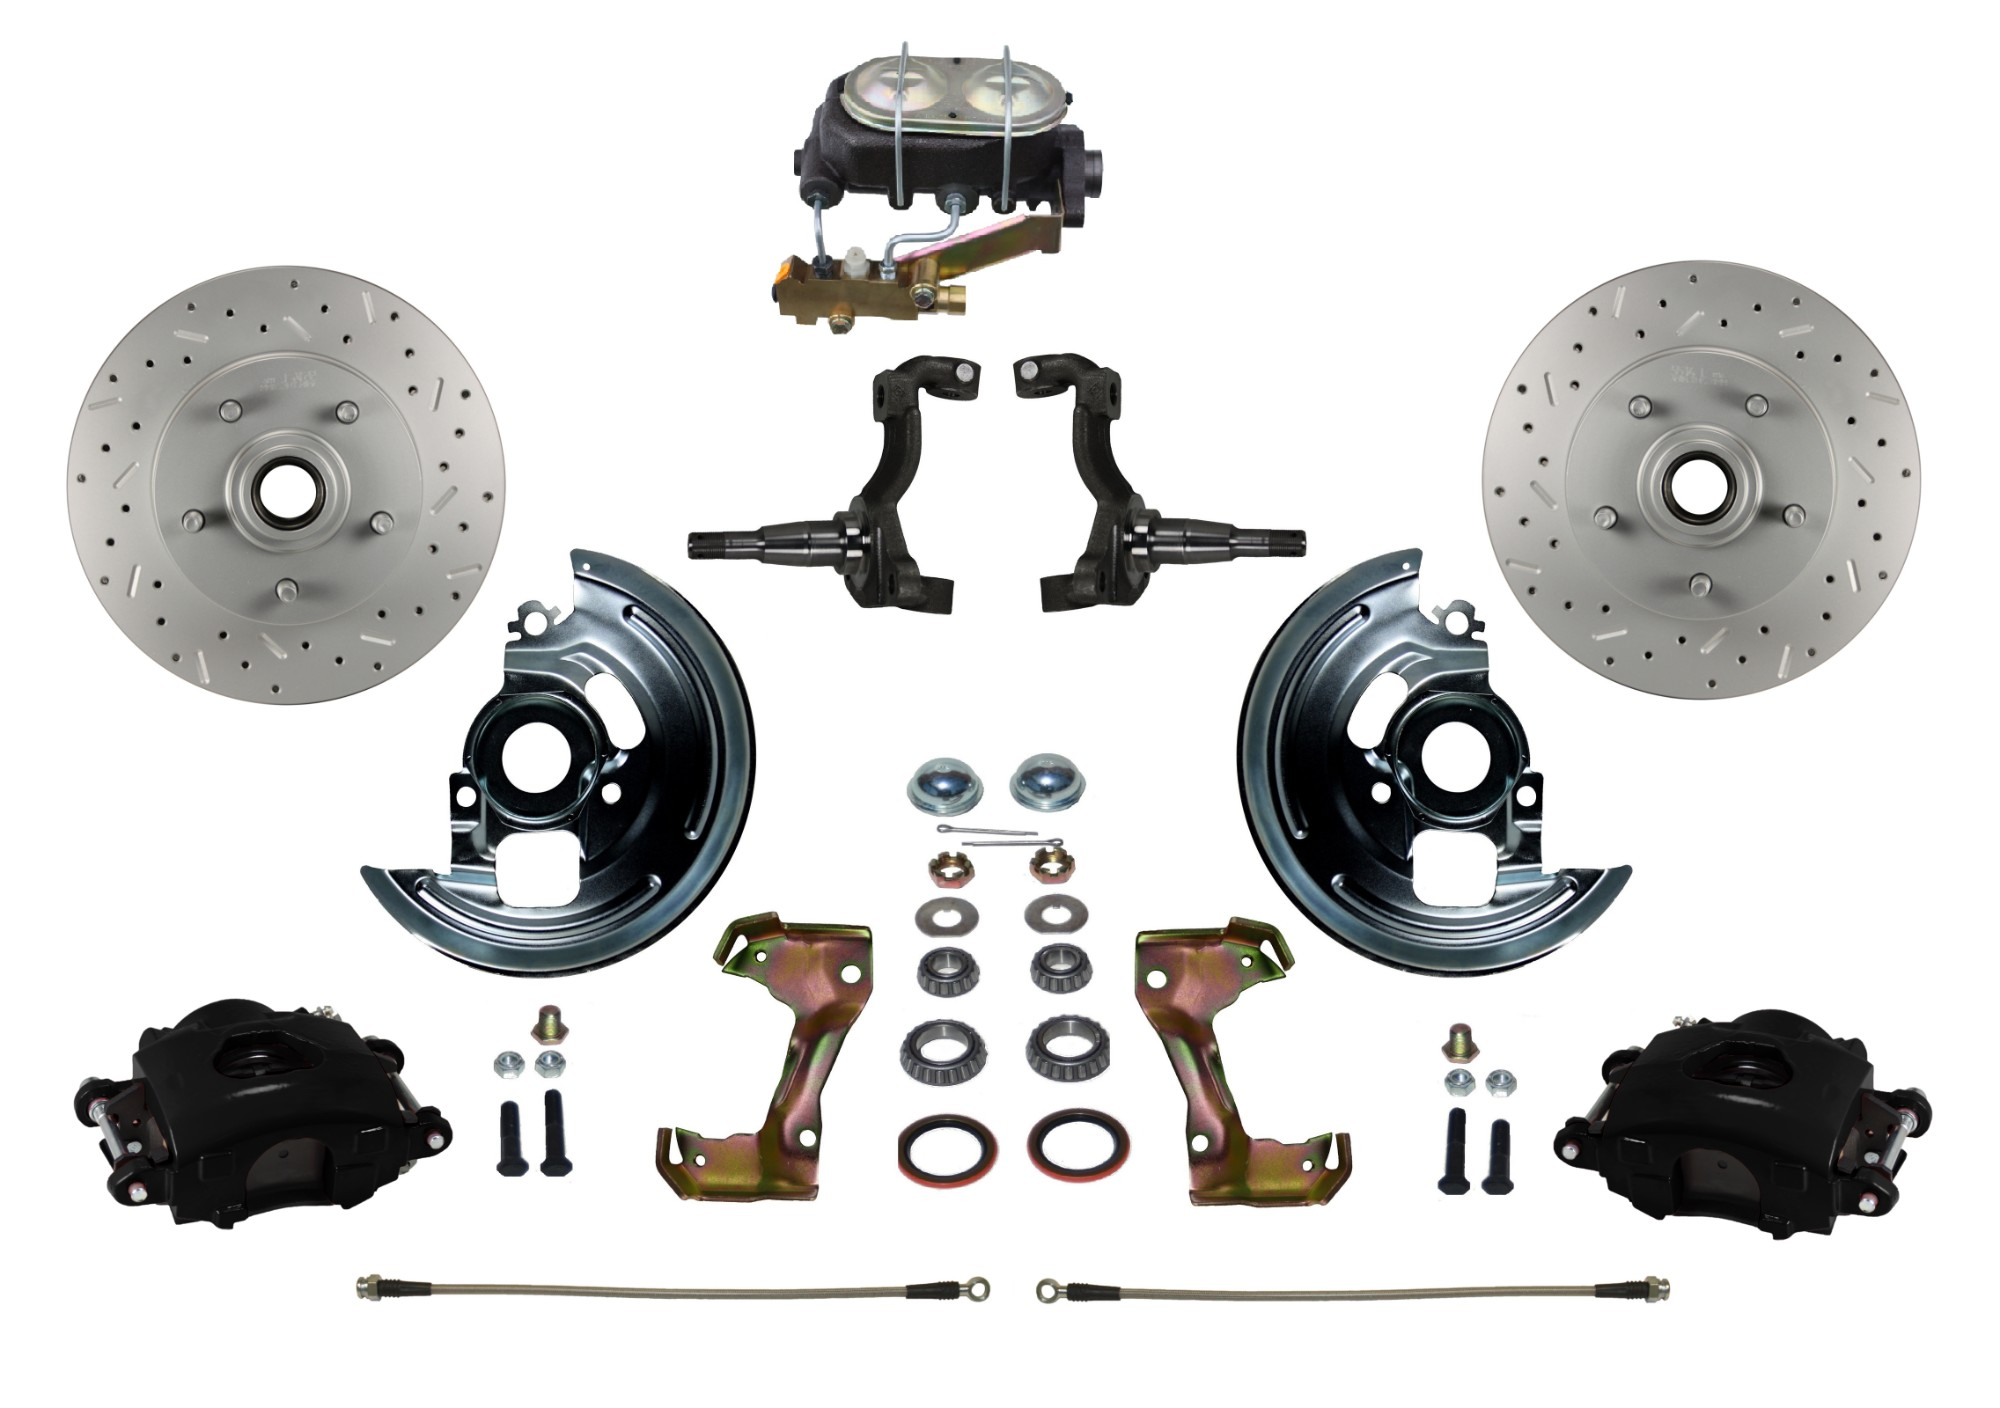 LEED Brakes BFC1002-3A1X Front Disc Brake Kit - Manual Brakes - Black - MaxGrip - Disc/Drum